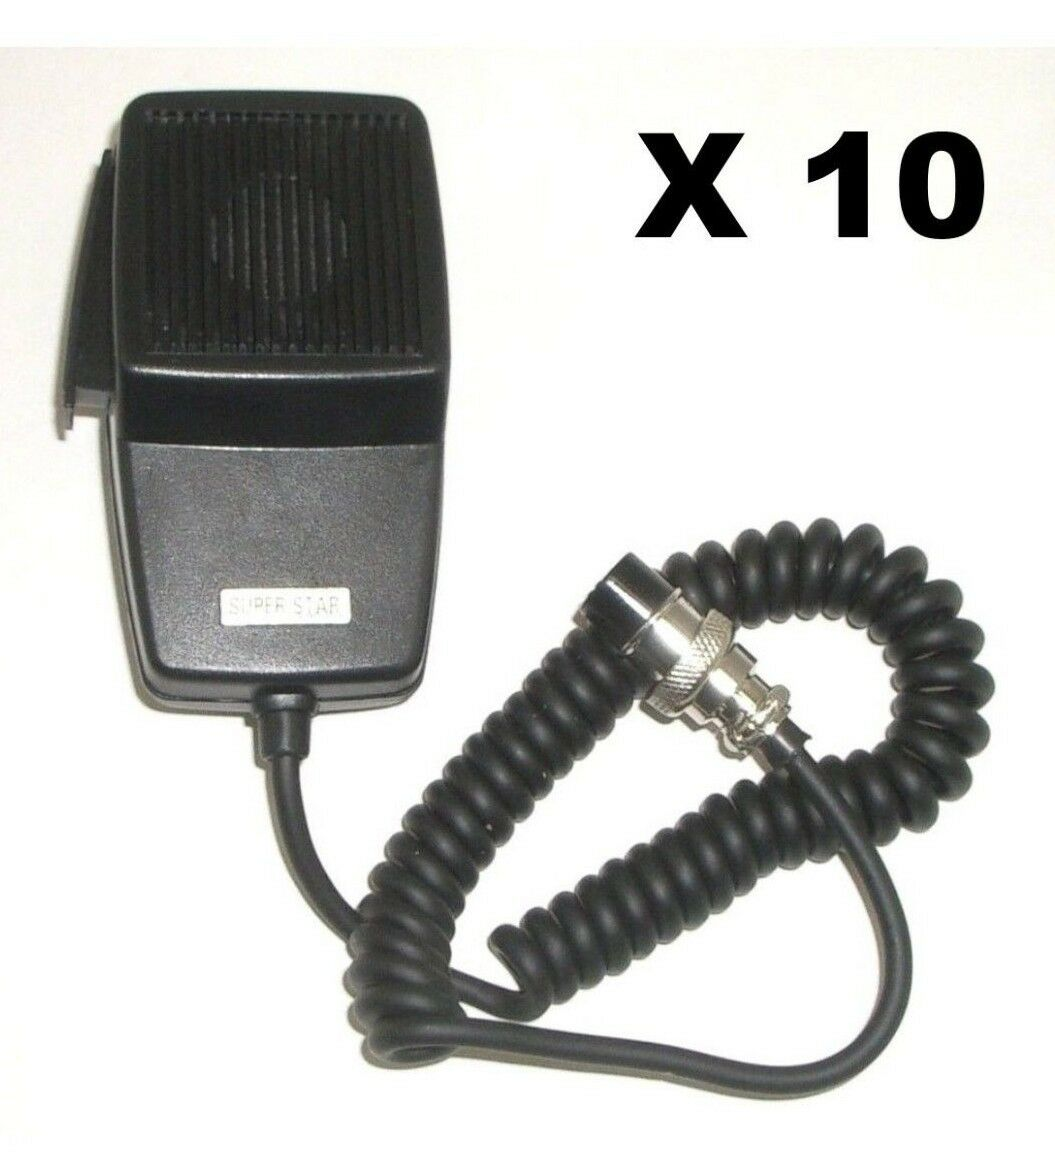 LOT OF 10 WORKMAN DM507-4 REPLACEMENT CB RADIO MICROPHONE 4-PIN COBRA/UNIDEN. Buy it now for 76.99